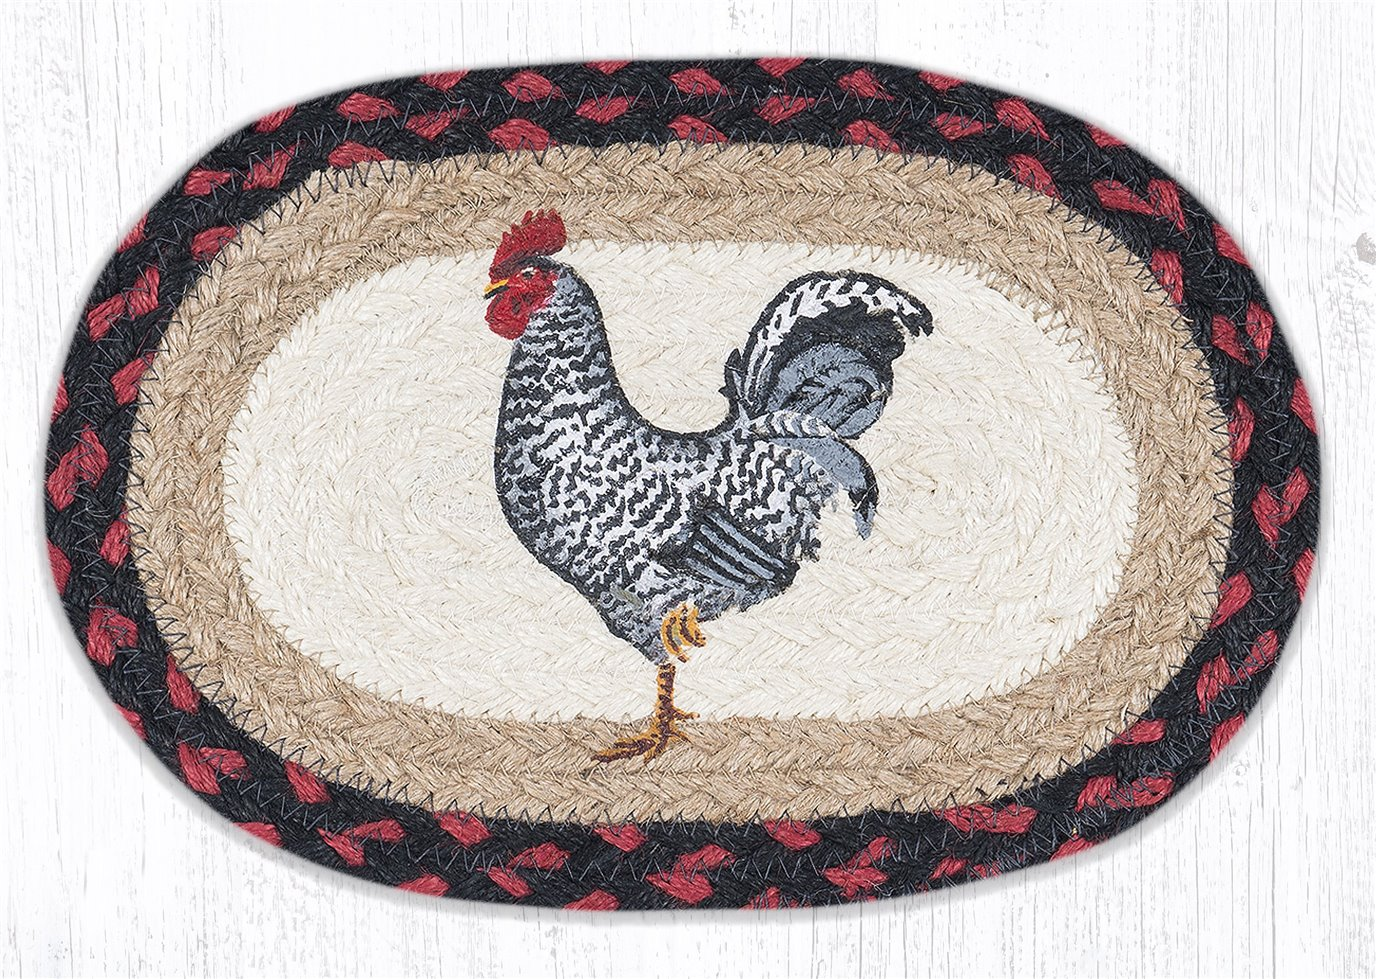 """Black & White Rooster Printed Oval Braided Swatch 7.5""""x11"""""""